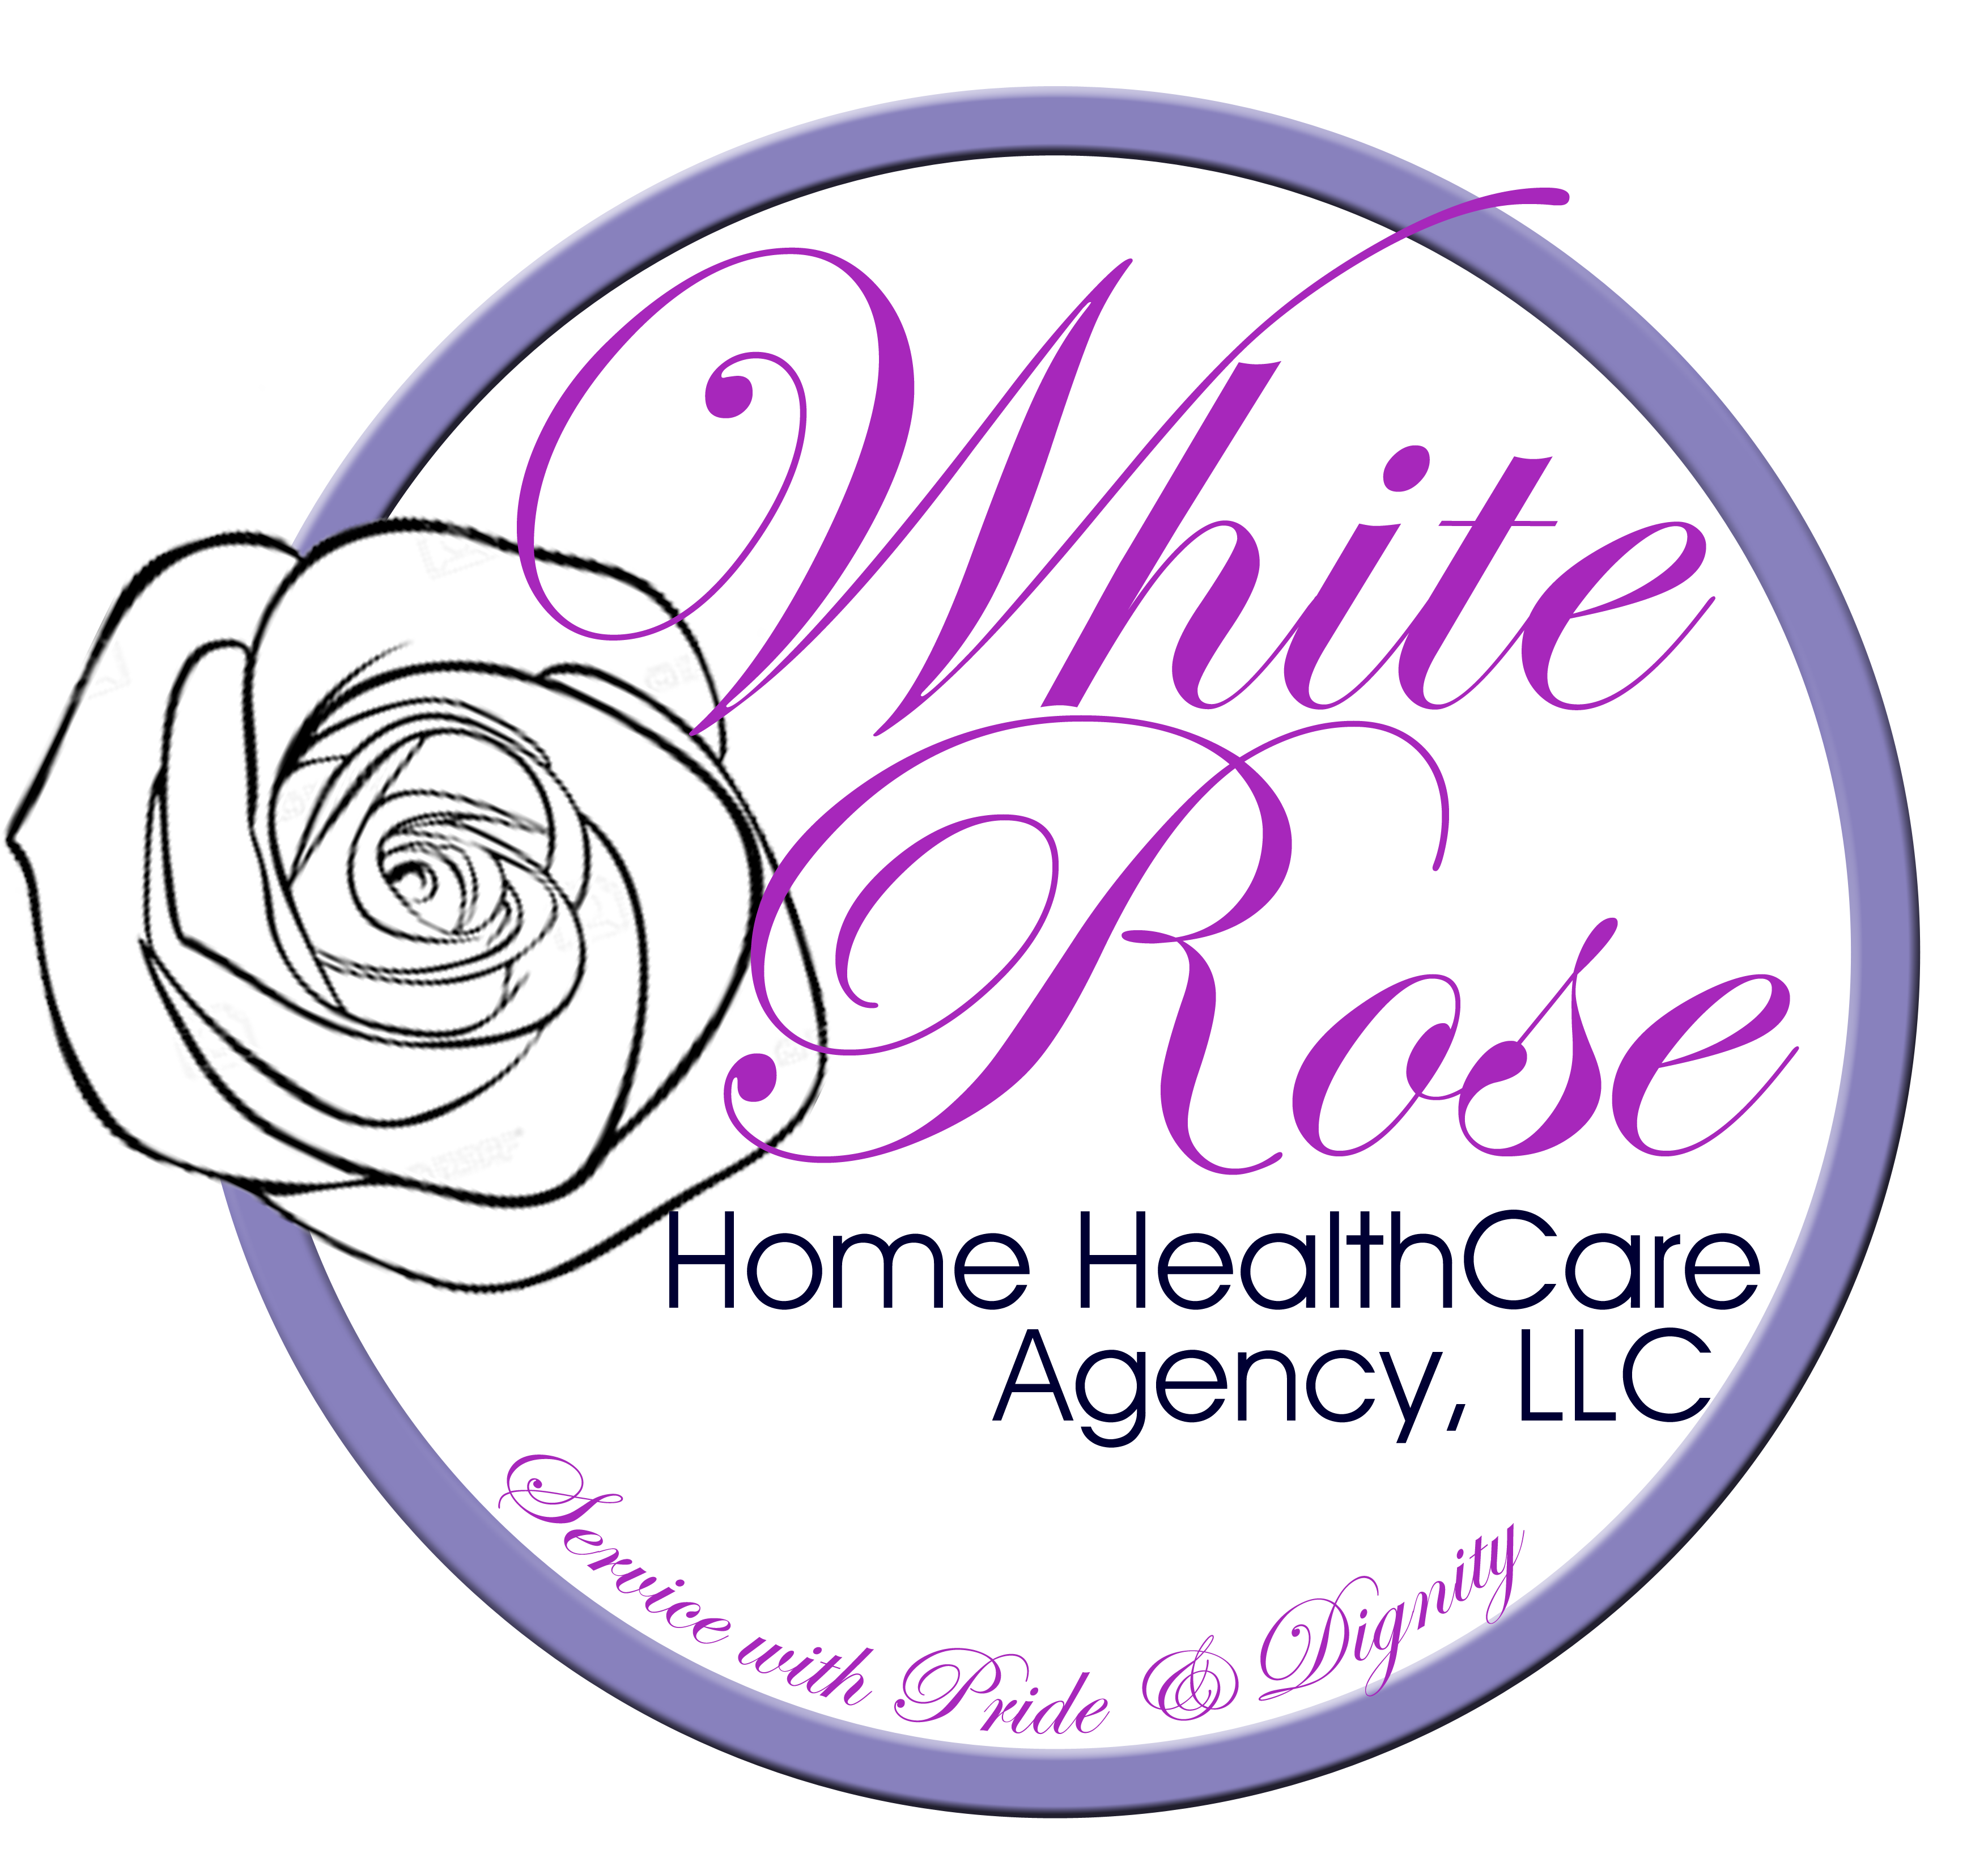 21. White Rose Home Healthcare Agency (Silver)